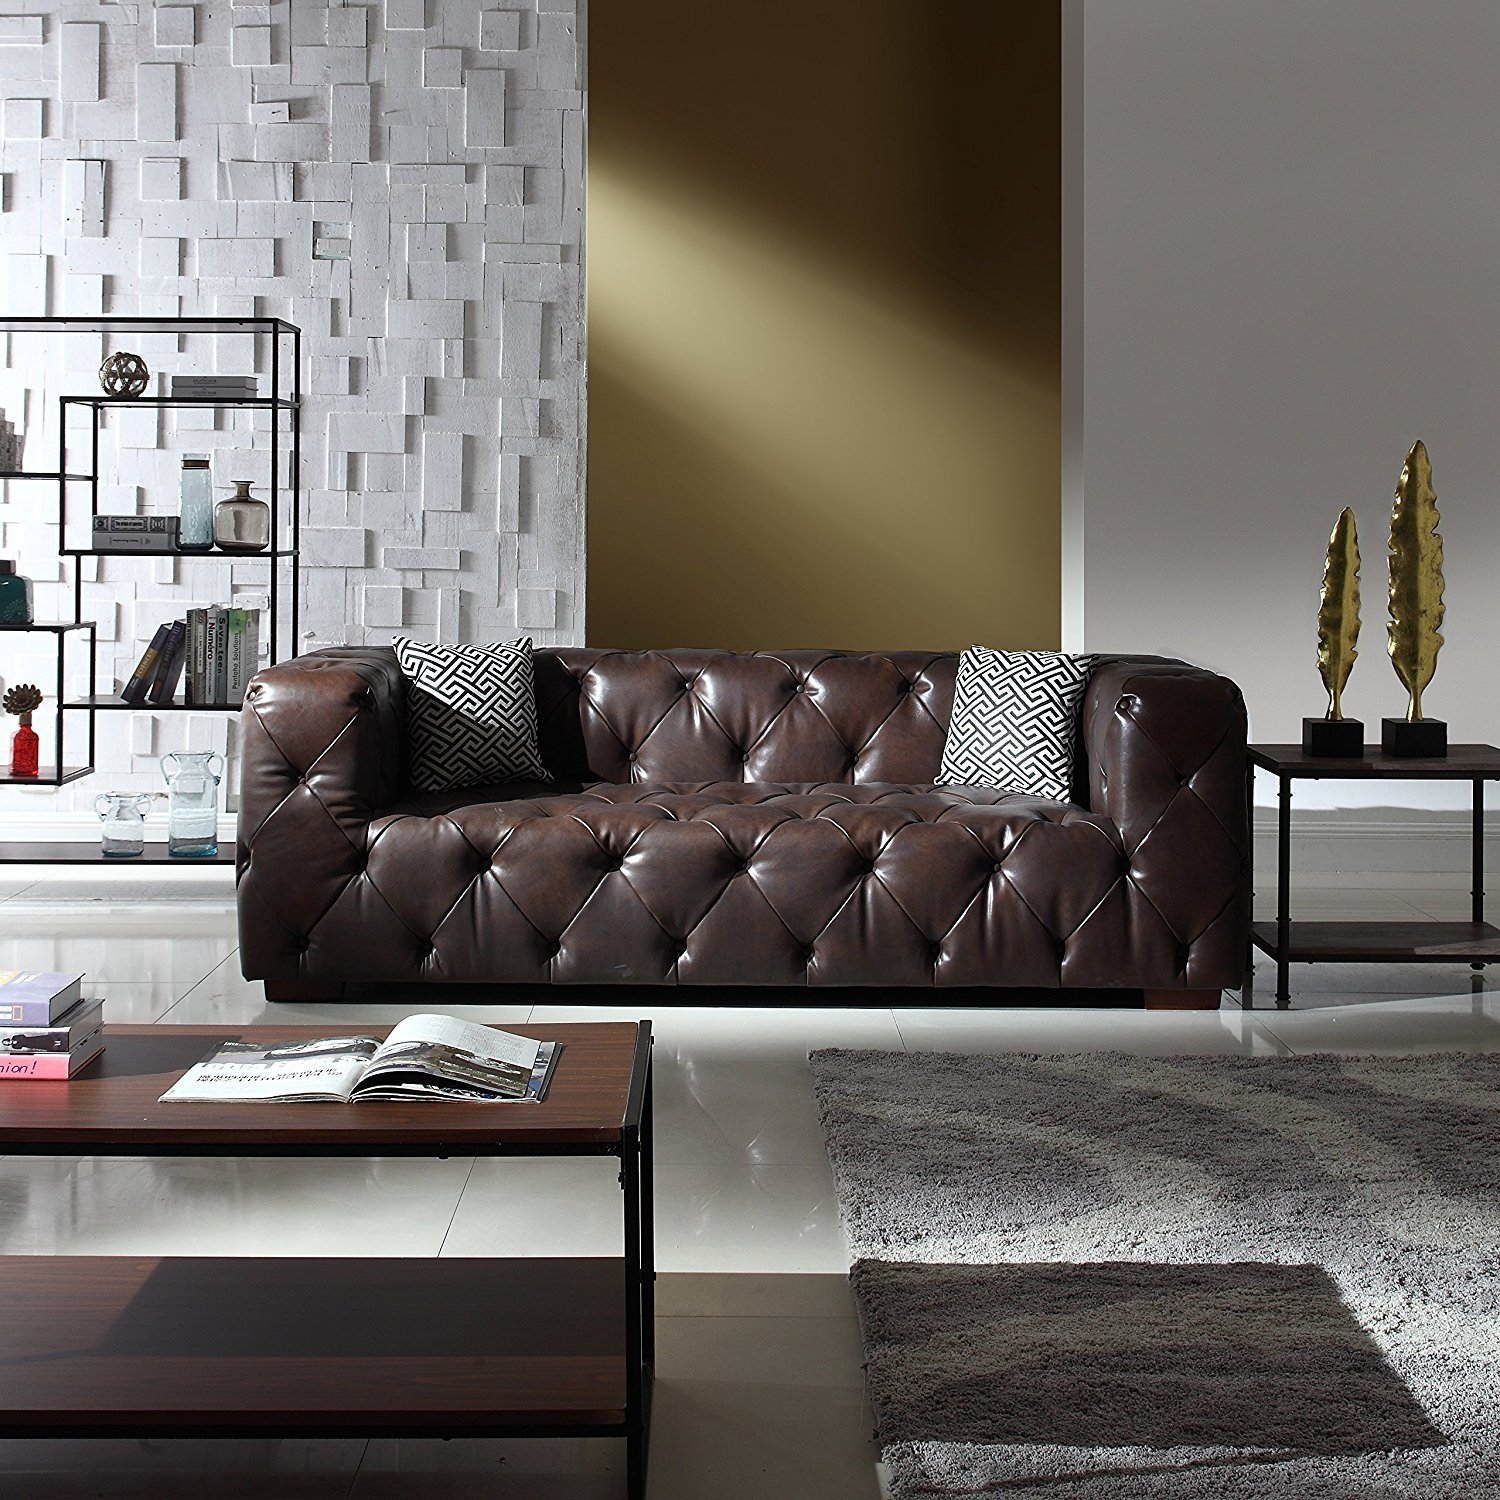 Sofa Couch Or Chesterfield Large Tufted Real Italian Leather Chesterfield Sofa Classic Living Room Couch Dark Brown